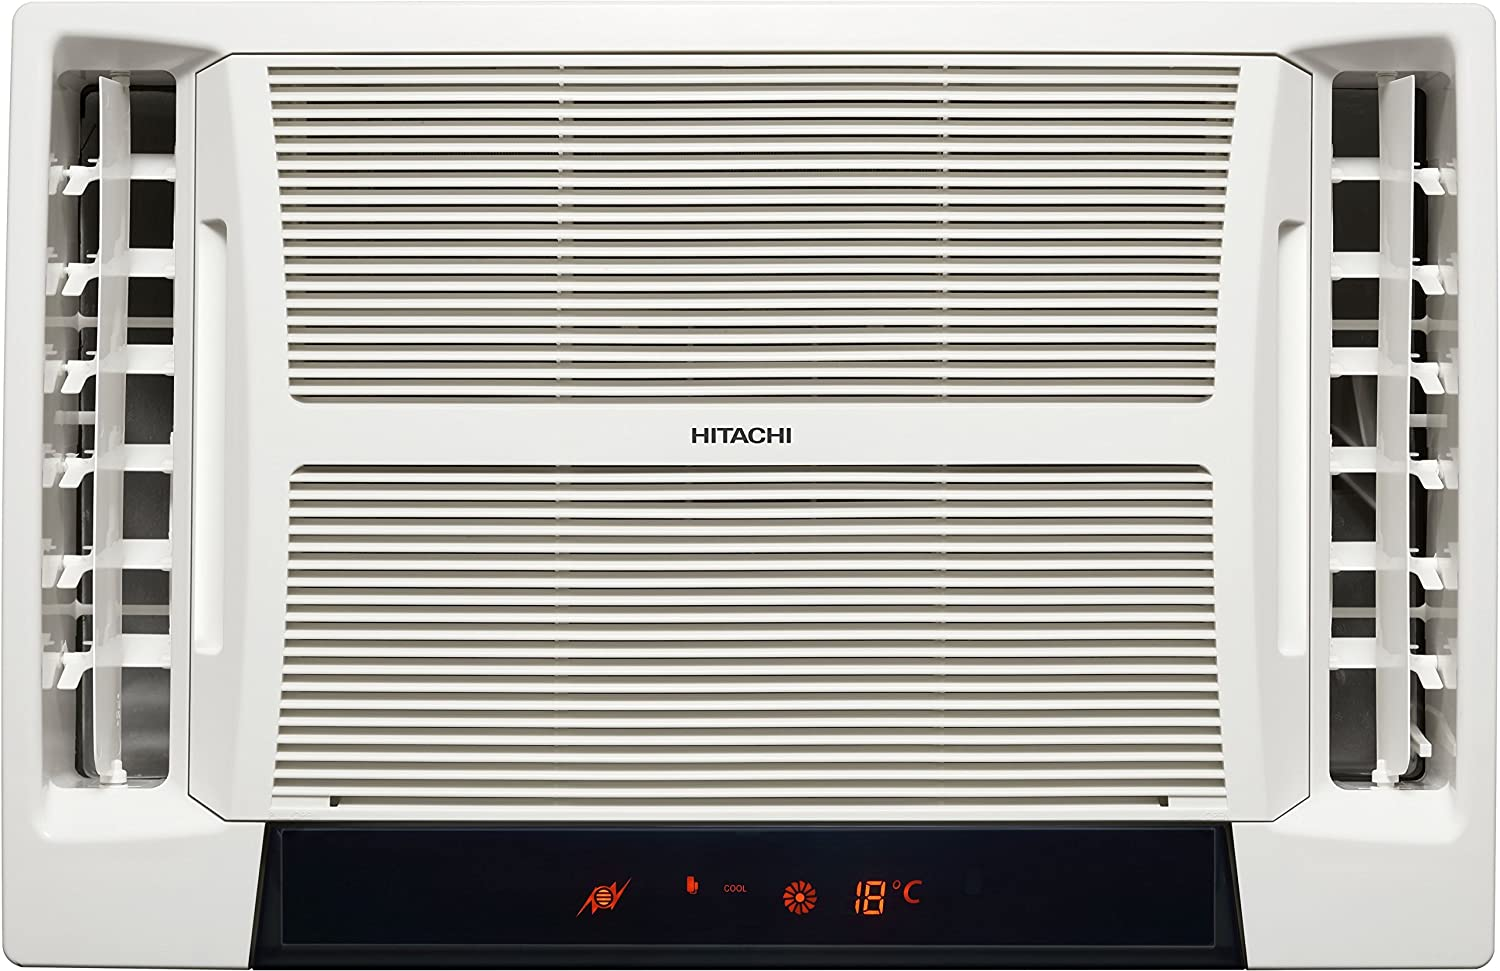 Hitachi Best Window 1.5 Ton AC in India